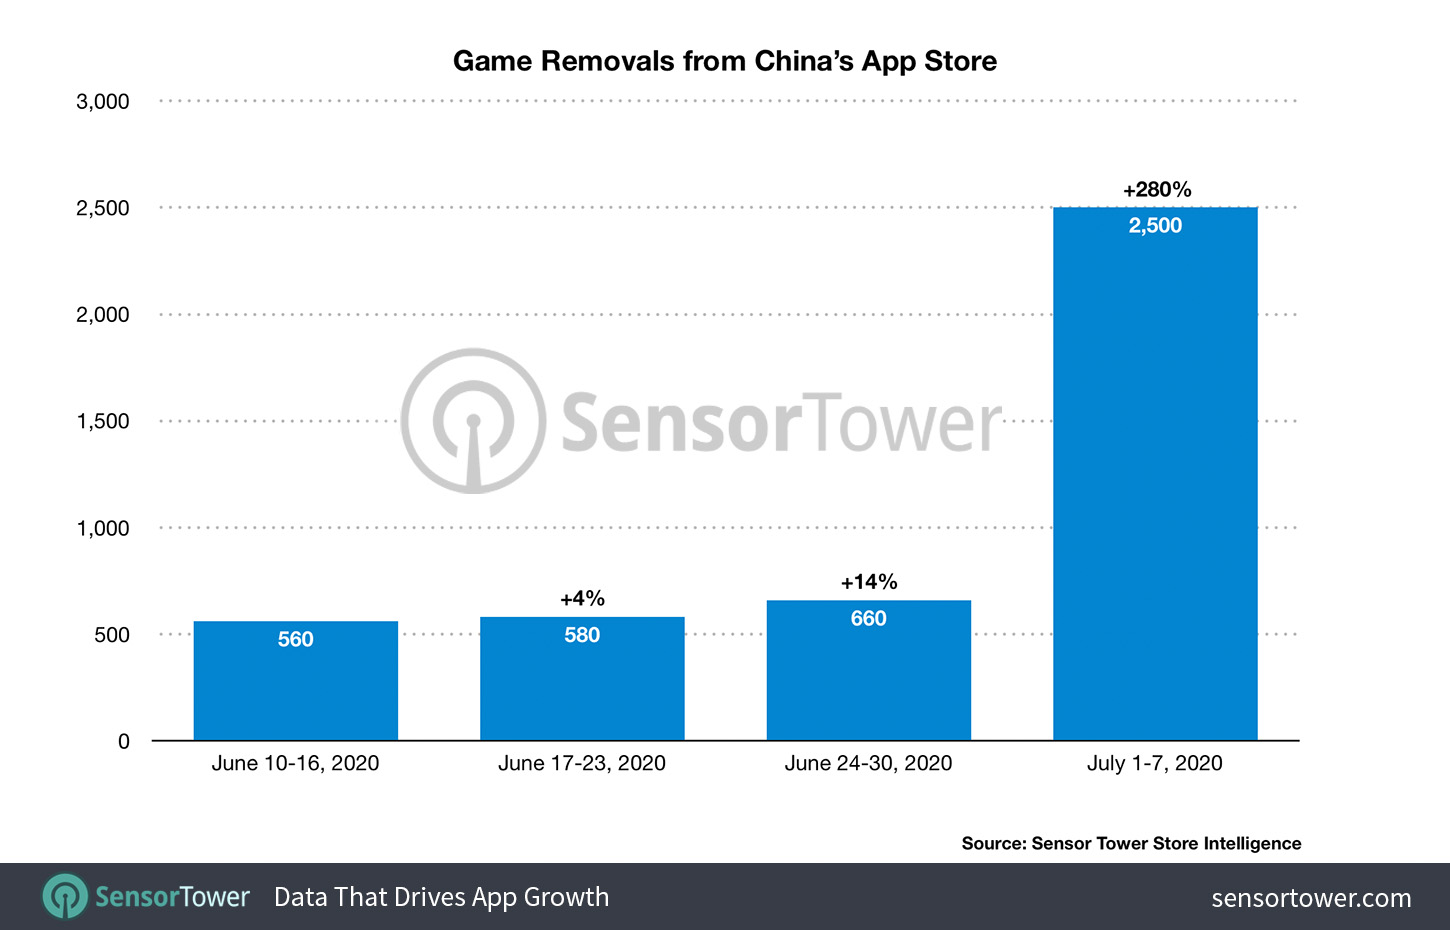 Over 2,500 games removed from Apple's China App Store in early July, as crackdown begins